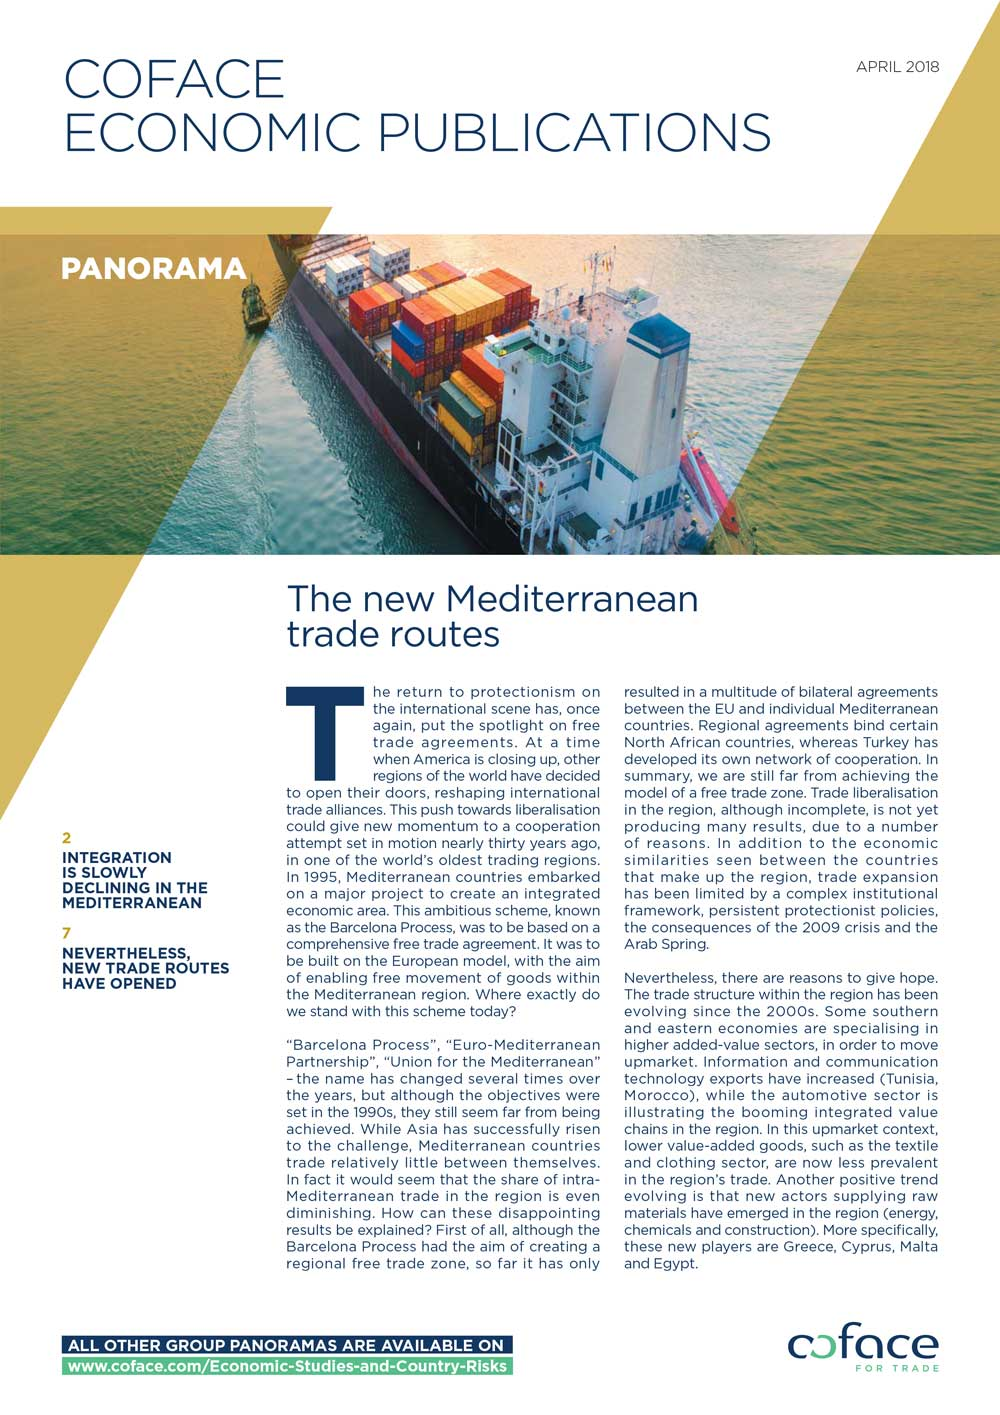 The new Mediterranean trade routes